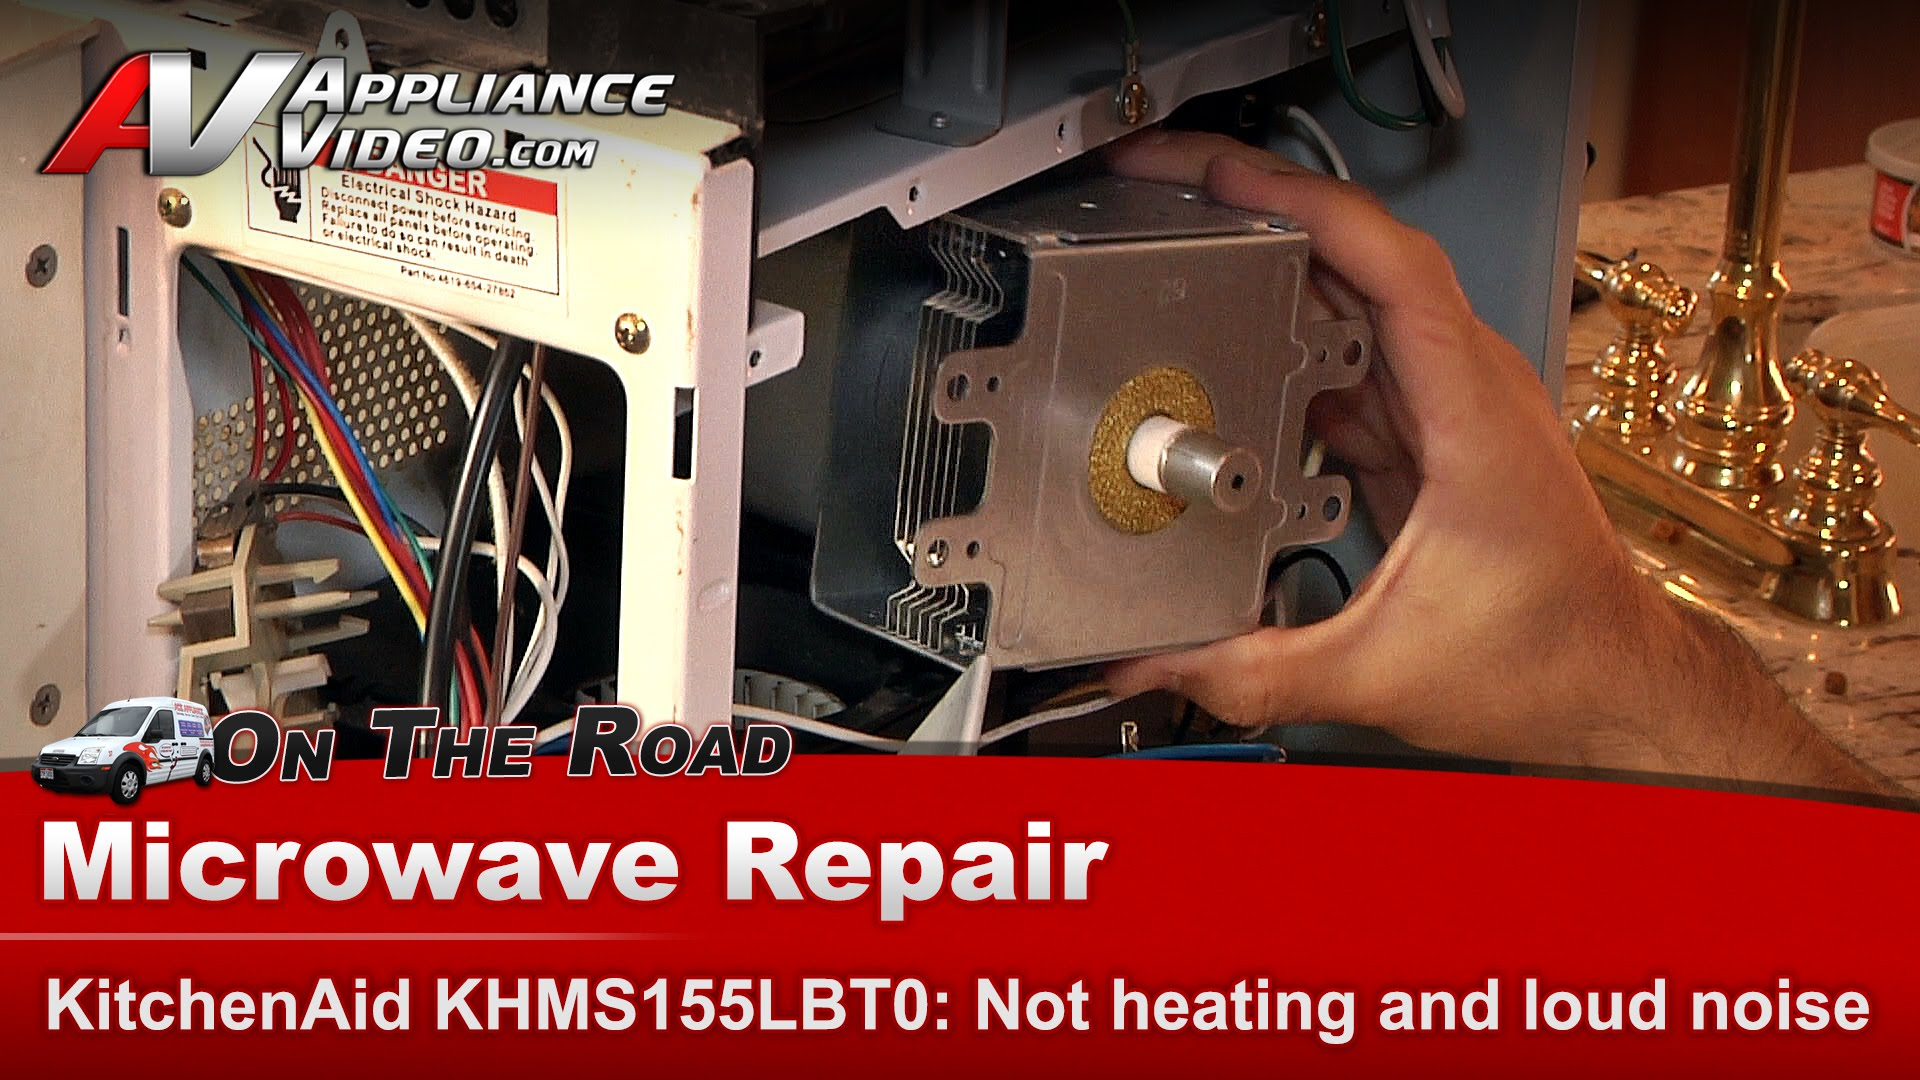 Kitchenaid Khms155lbt0 Microwave Diagnostic Repair Will